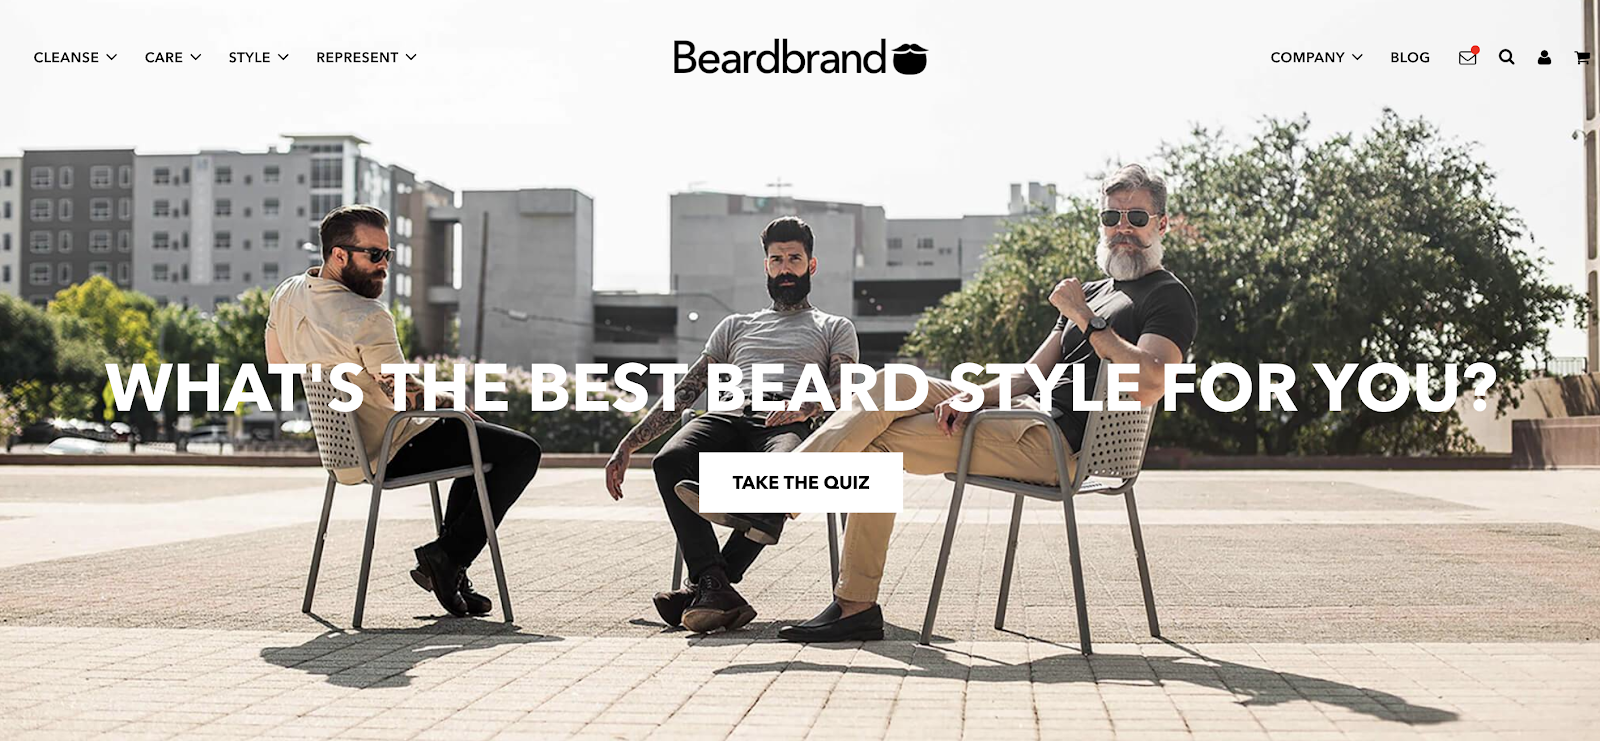 beardbrand homepage cta for visitors to take quiz